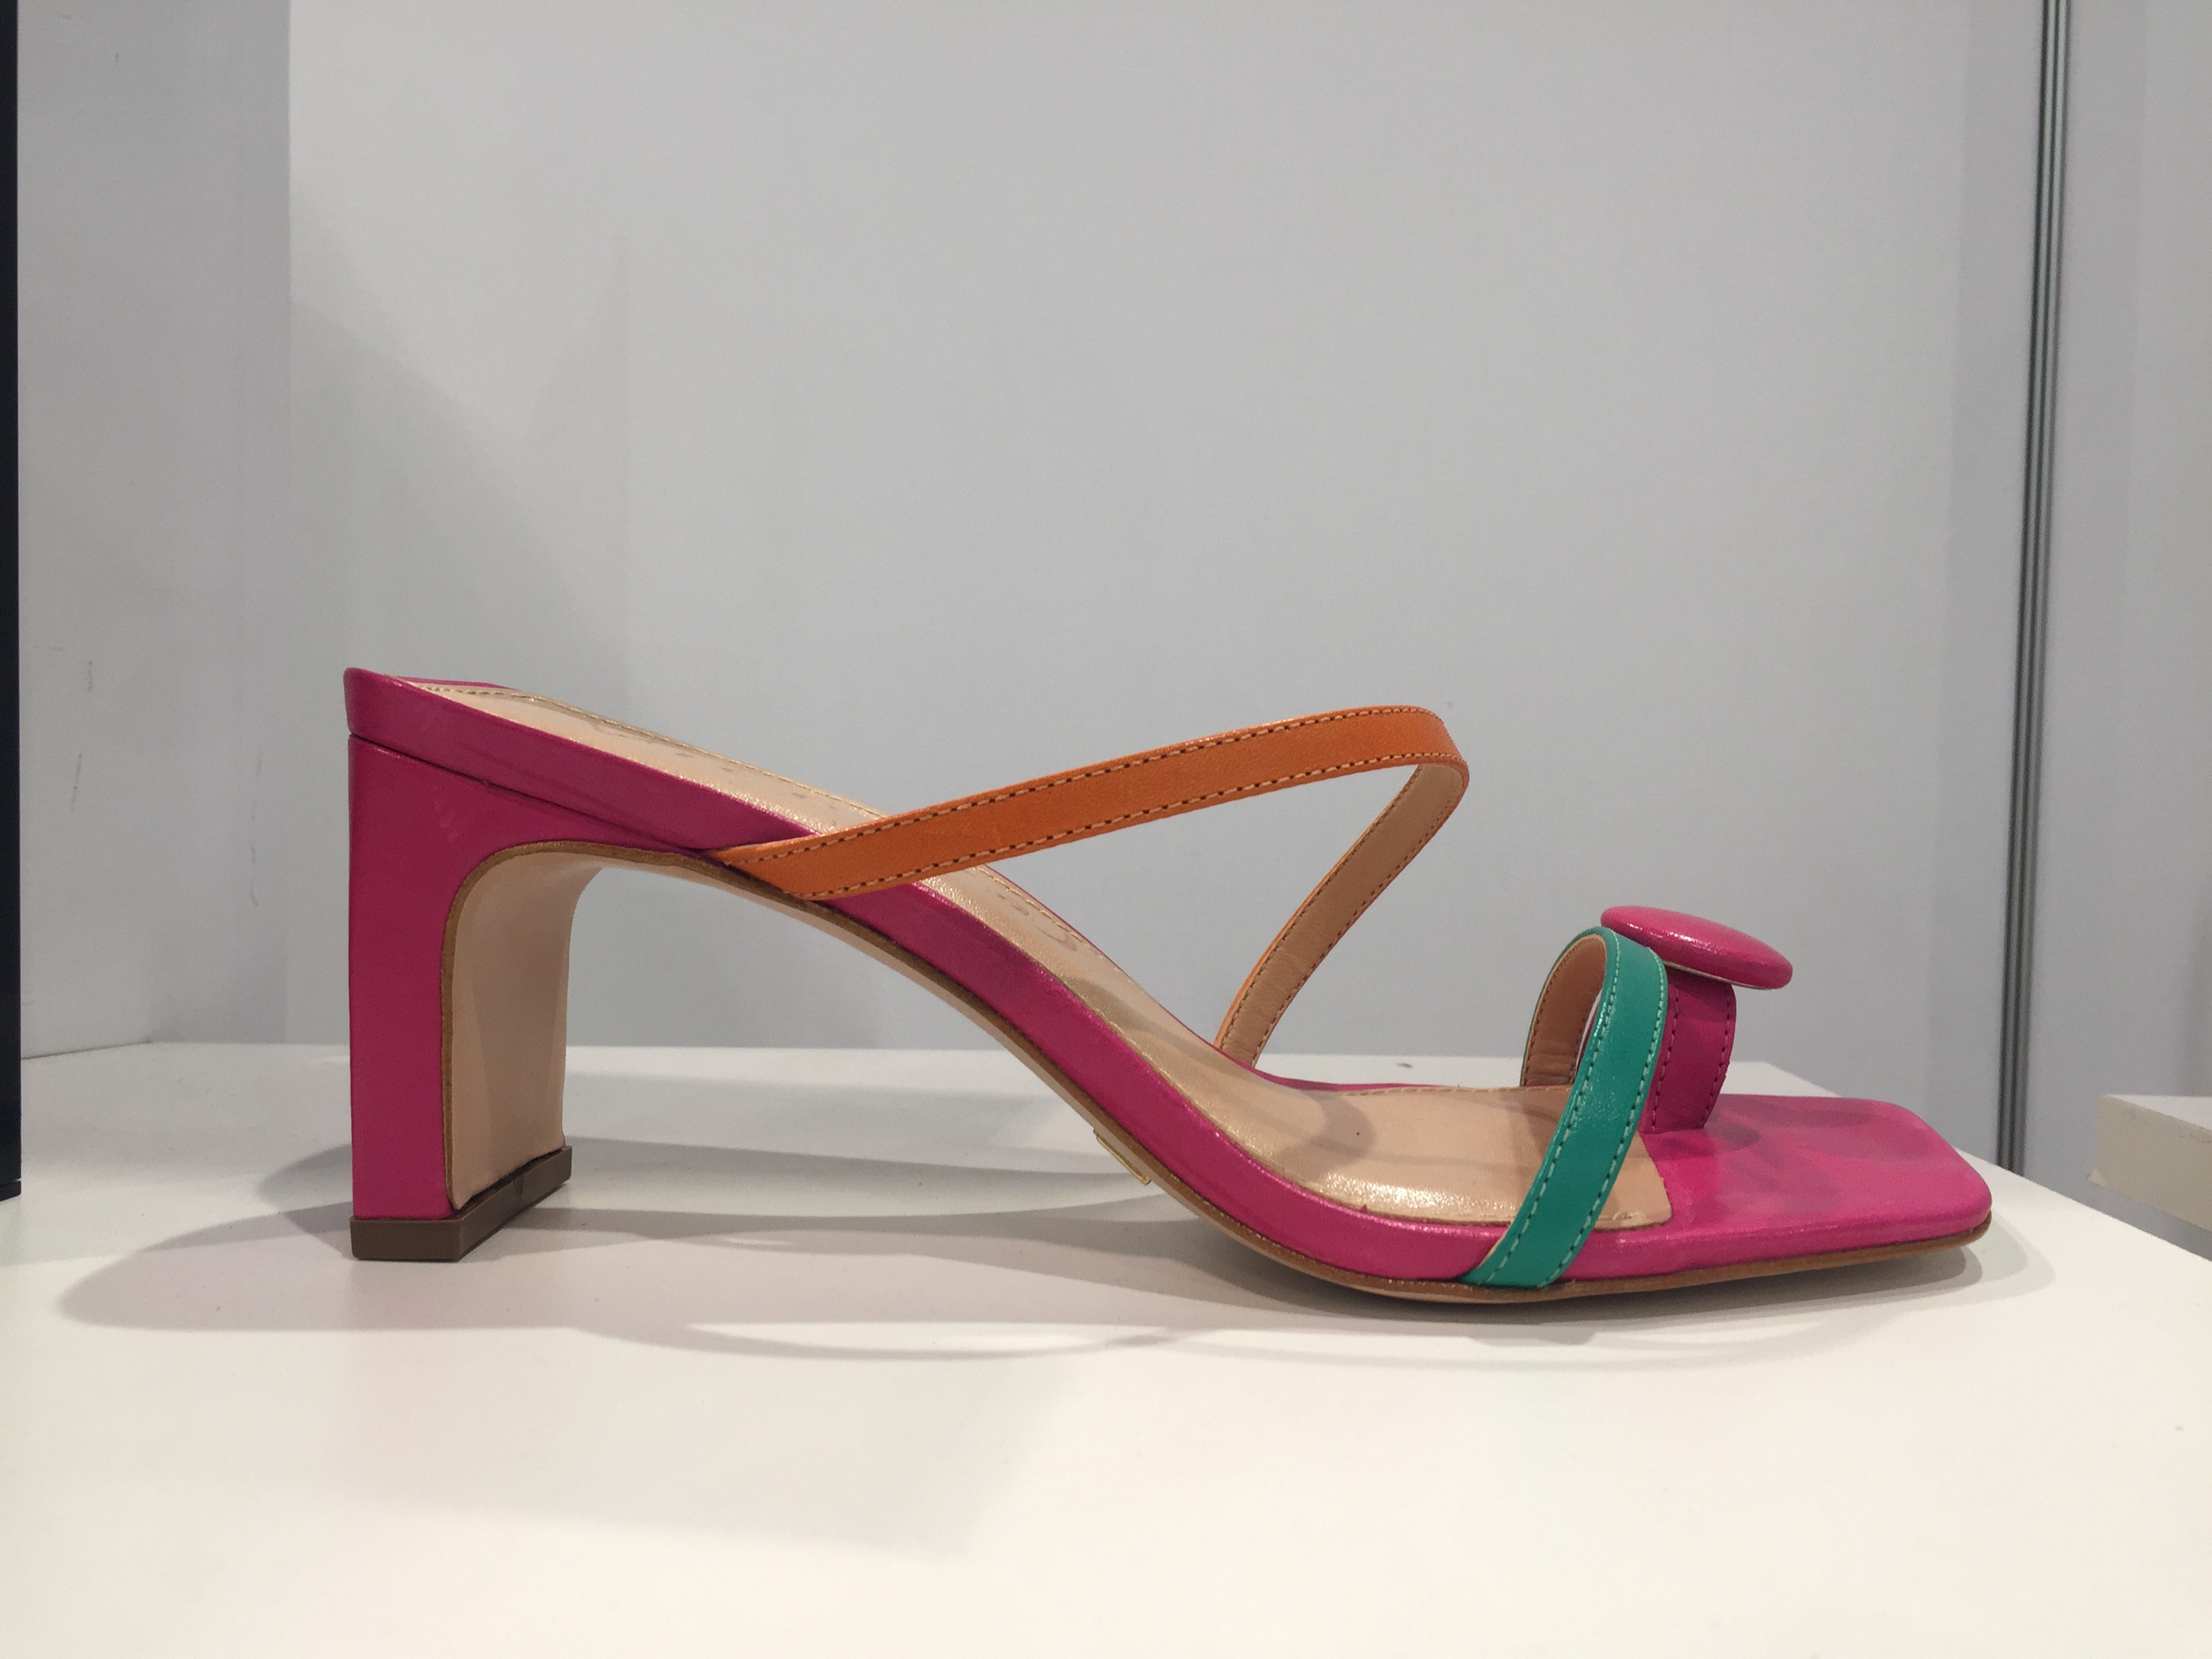 A heeled mule sandal in contrasting hues from Vicenza.